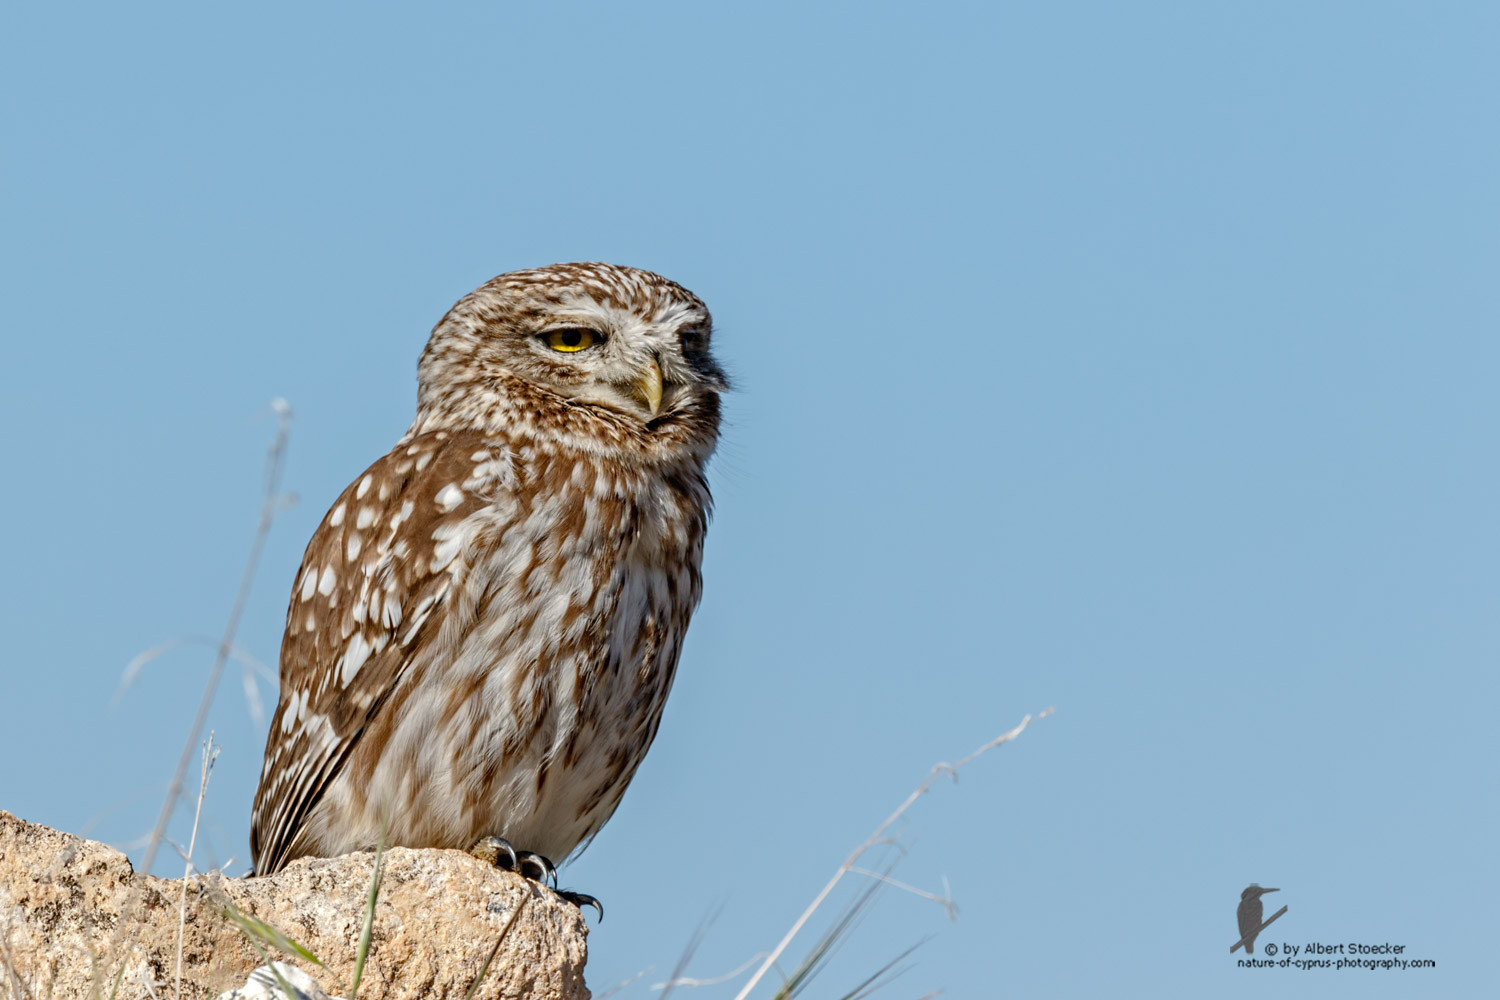 Athene noctua - Little Owl - Steinkauz, Cyprus, Anarita, March 2016